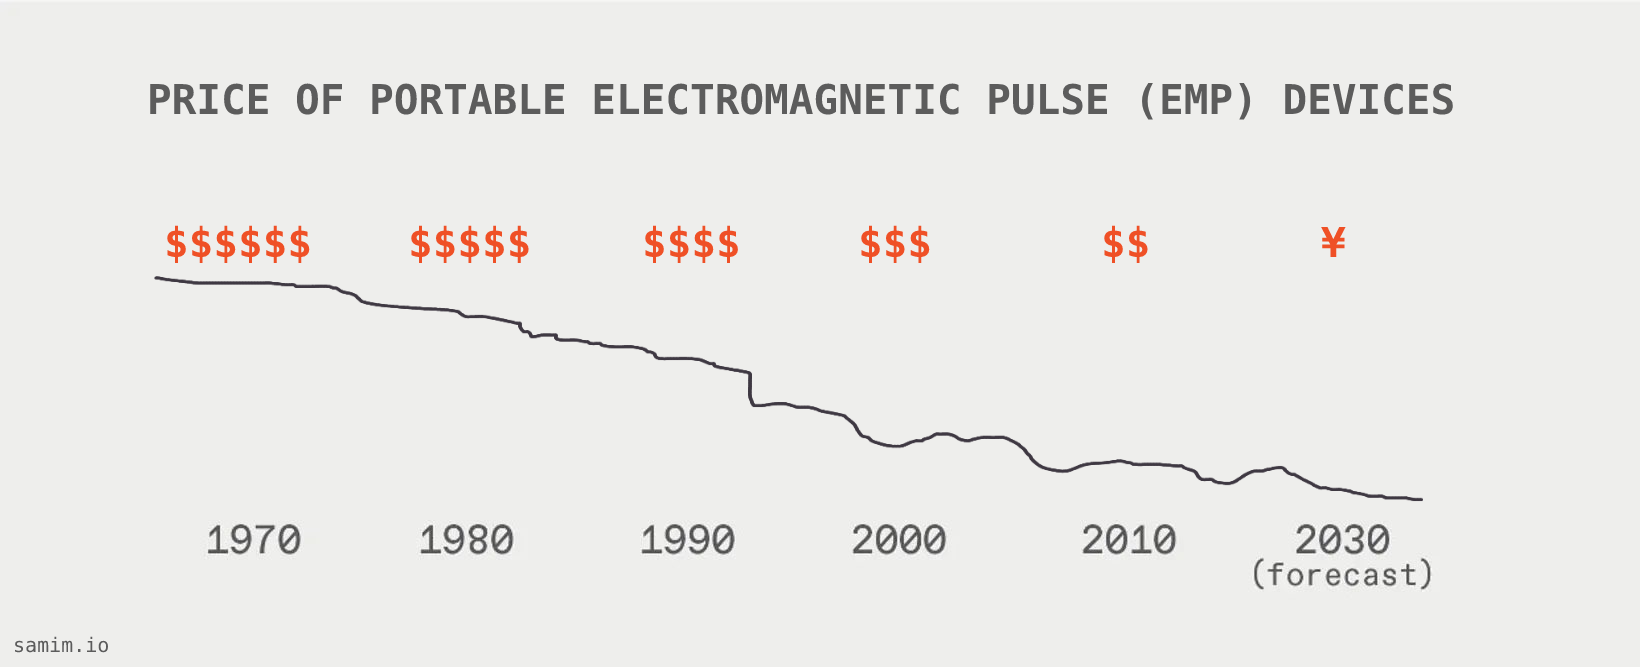 Price of Portable Electromagnetic Pulse (EMP) Devices